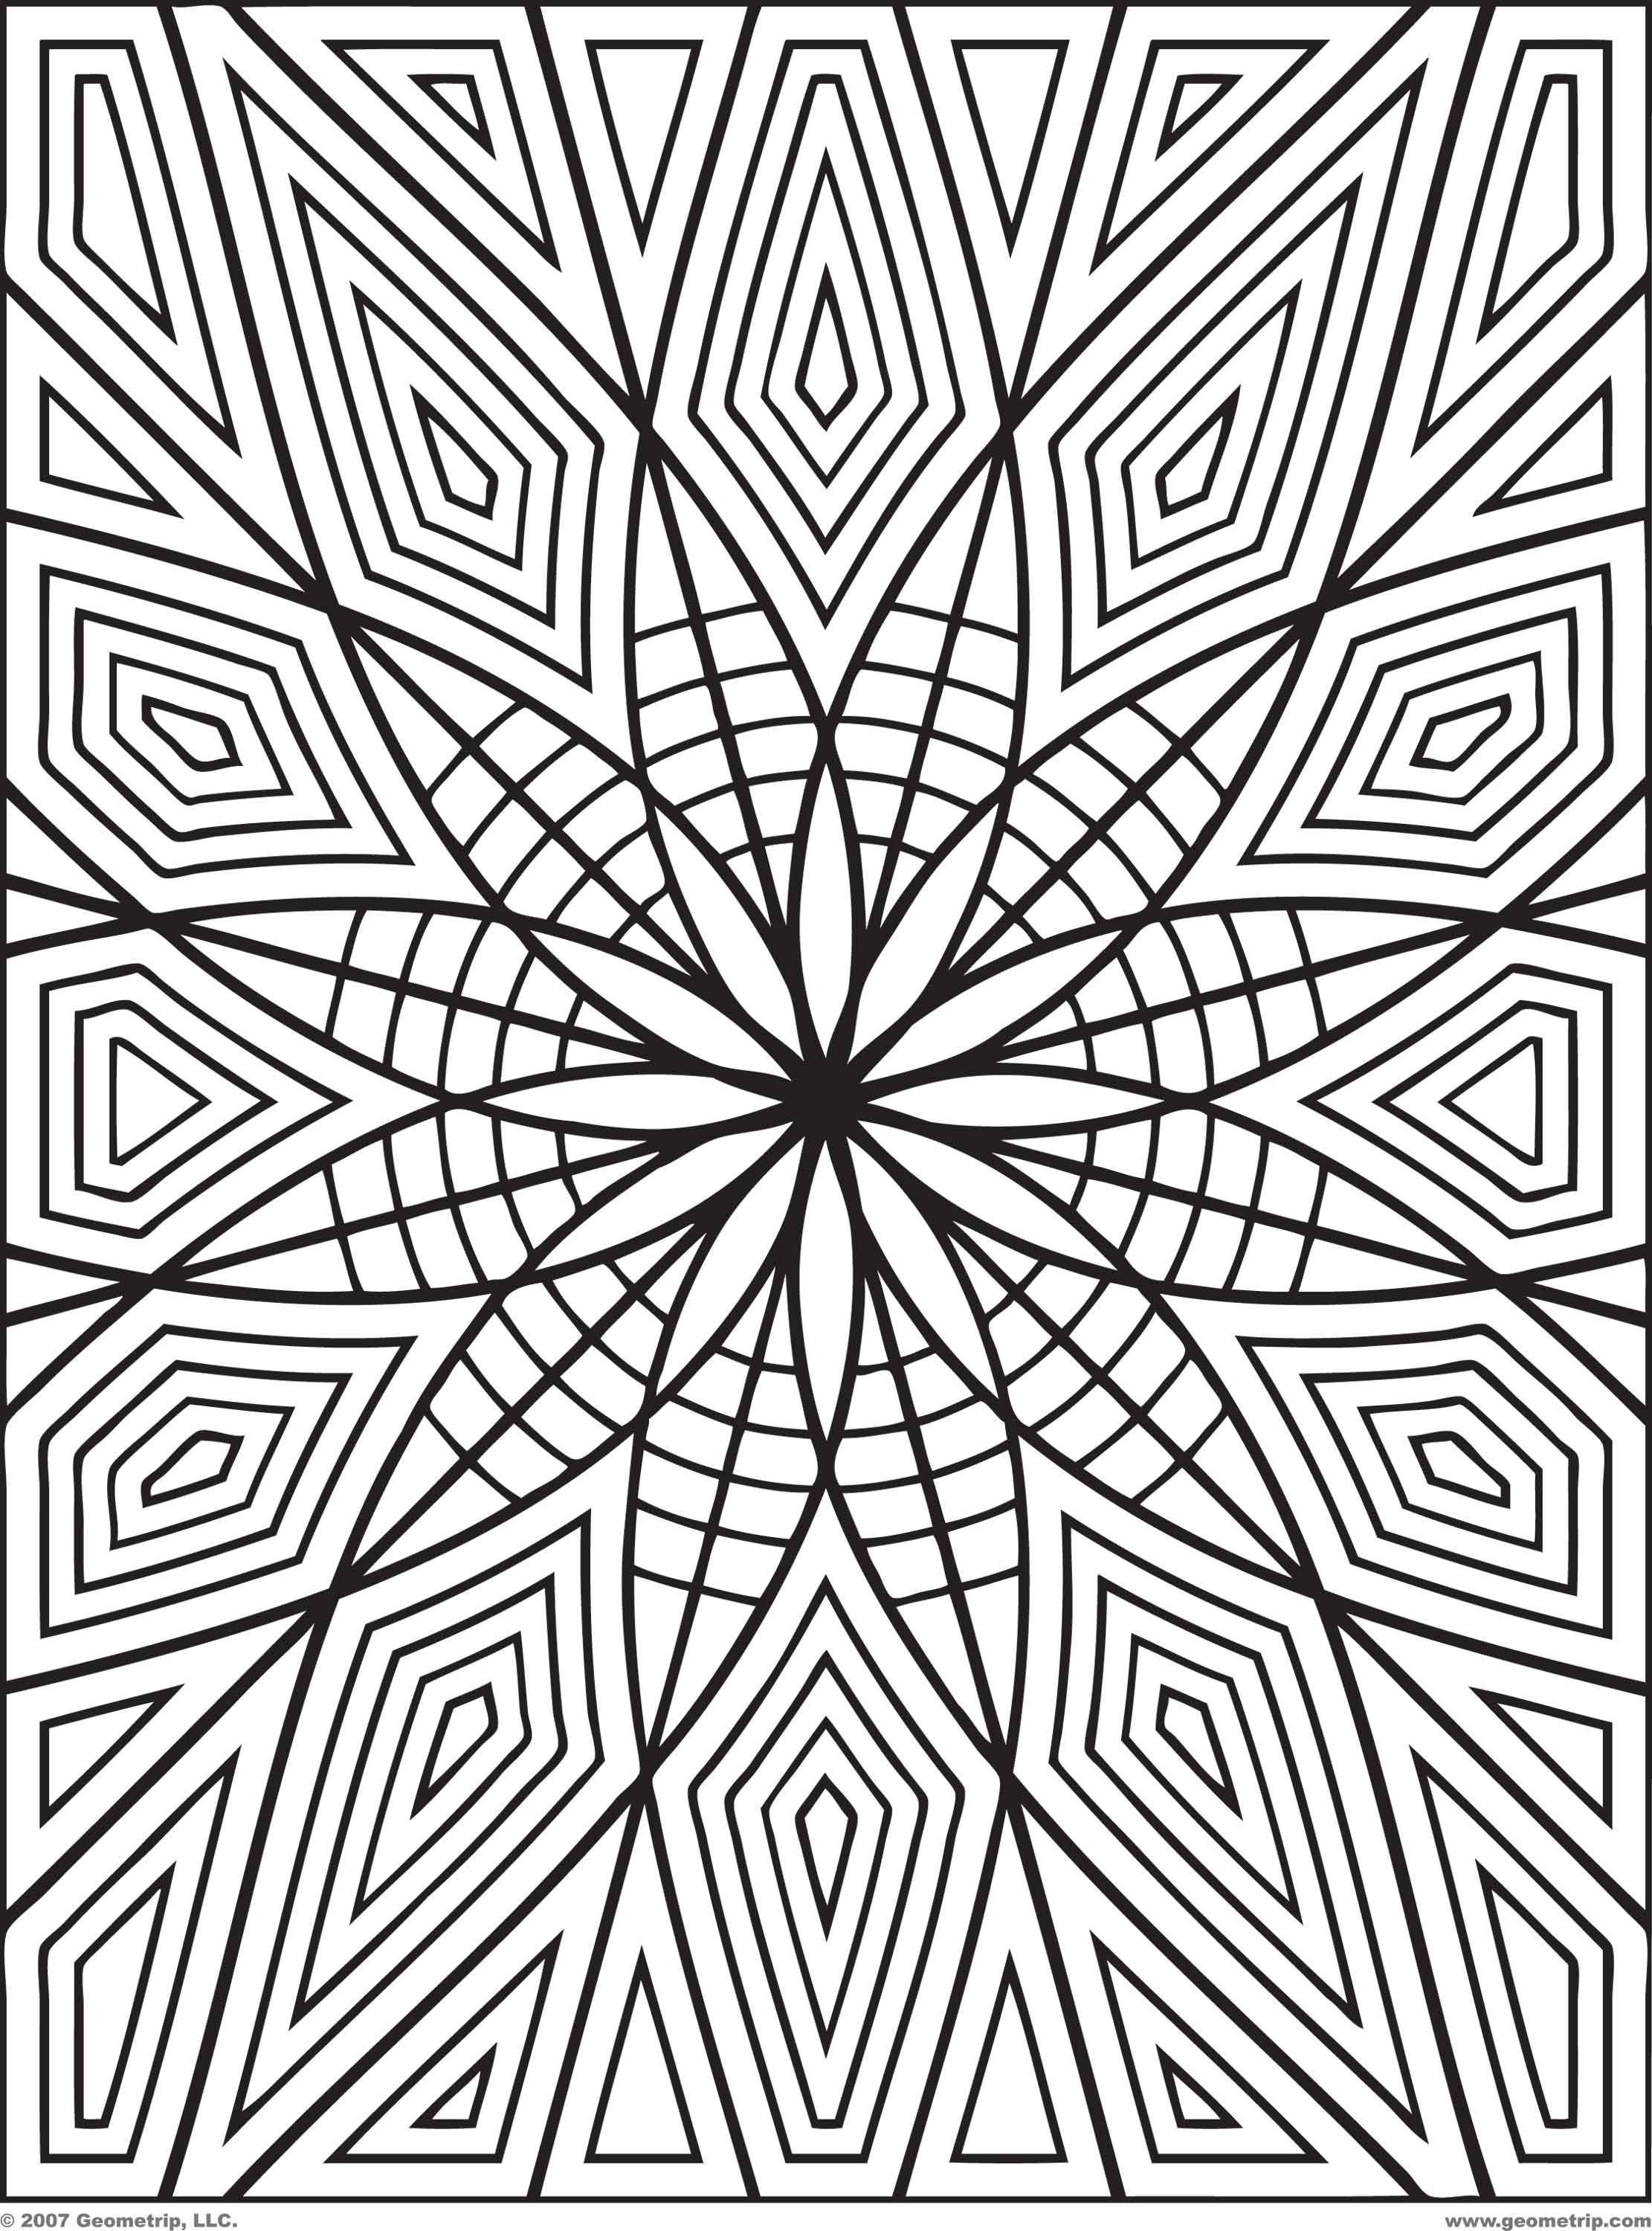 geometric design coloring pages geometric coloring pages pdf pic 1 hawaiidermatology com 470 kb 2222